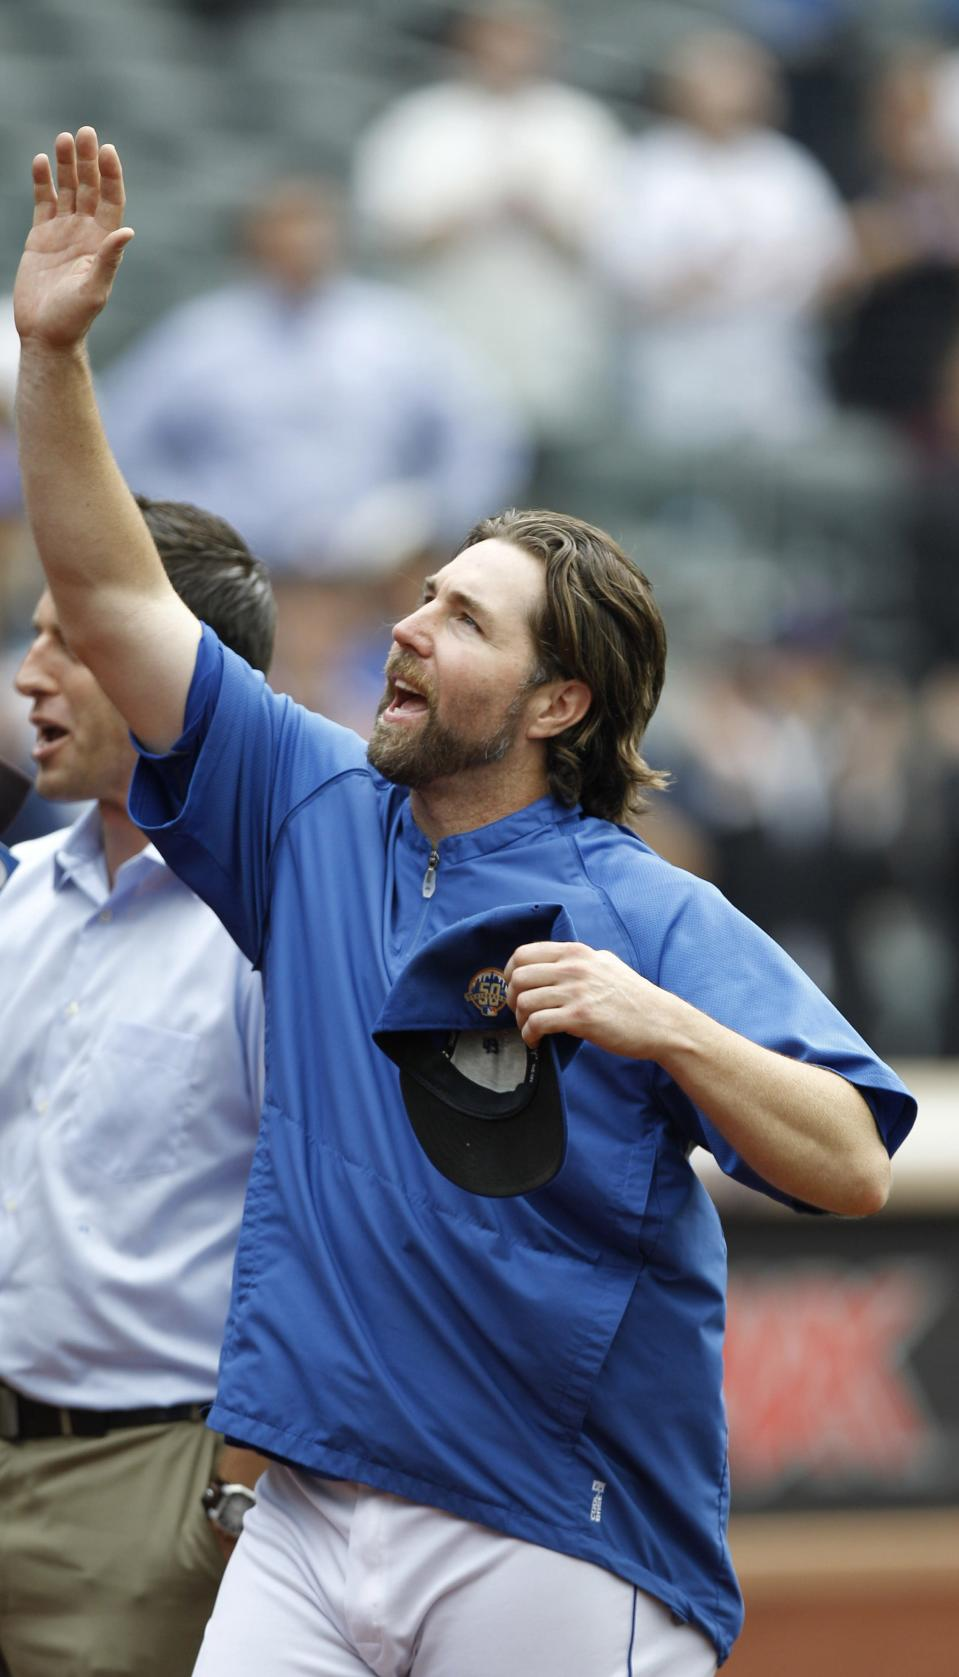 New York Mets starting pitcher R.A. Dickey acknowledges fans as he celebrates his 20th victory of the season after the Mets 6-5 win against the Pittsburgh Pirates in a baseball game at Citi Field in New York, Thursday, Sept. 27, 2012. (AP Photo/Kathy Willens)